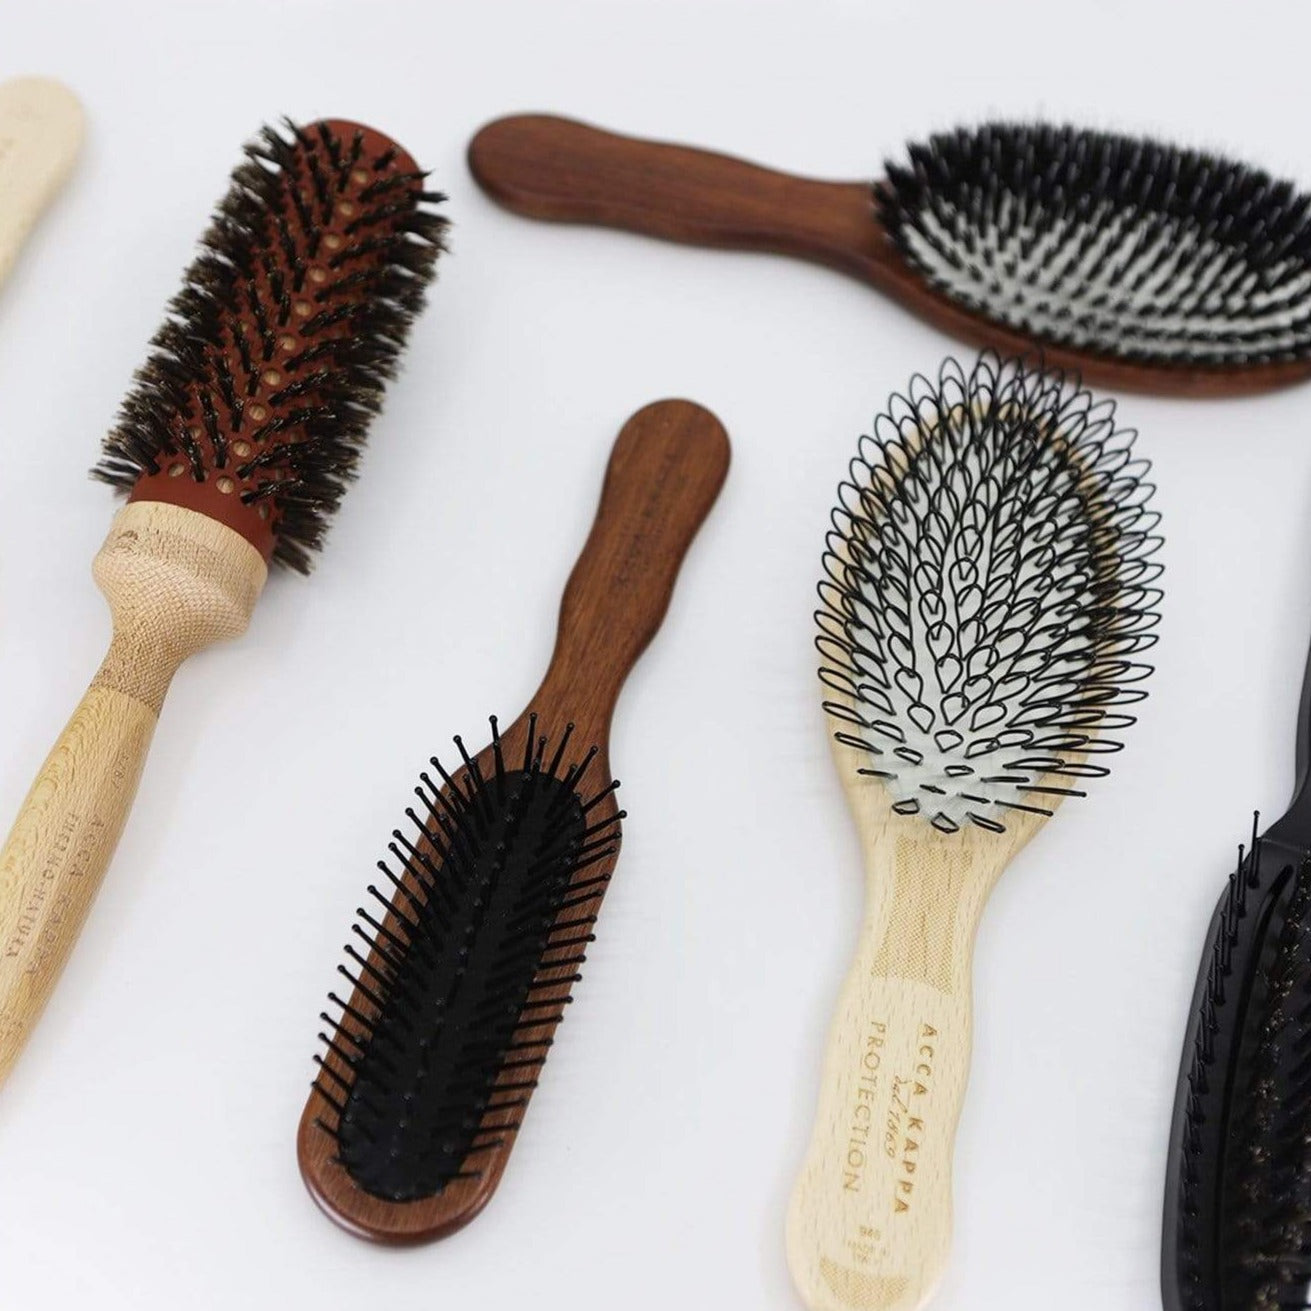 Acca Kappa Natura Oval Protection Hair Brush